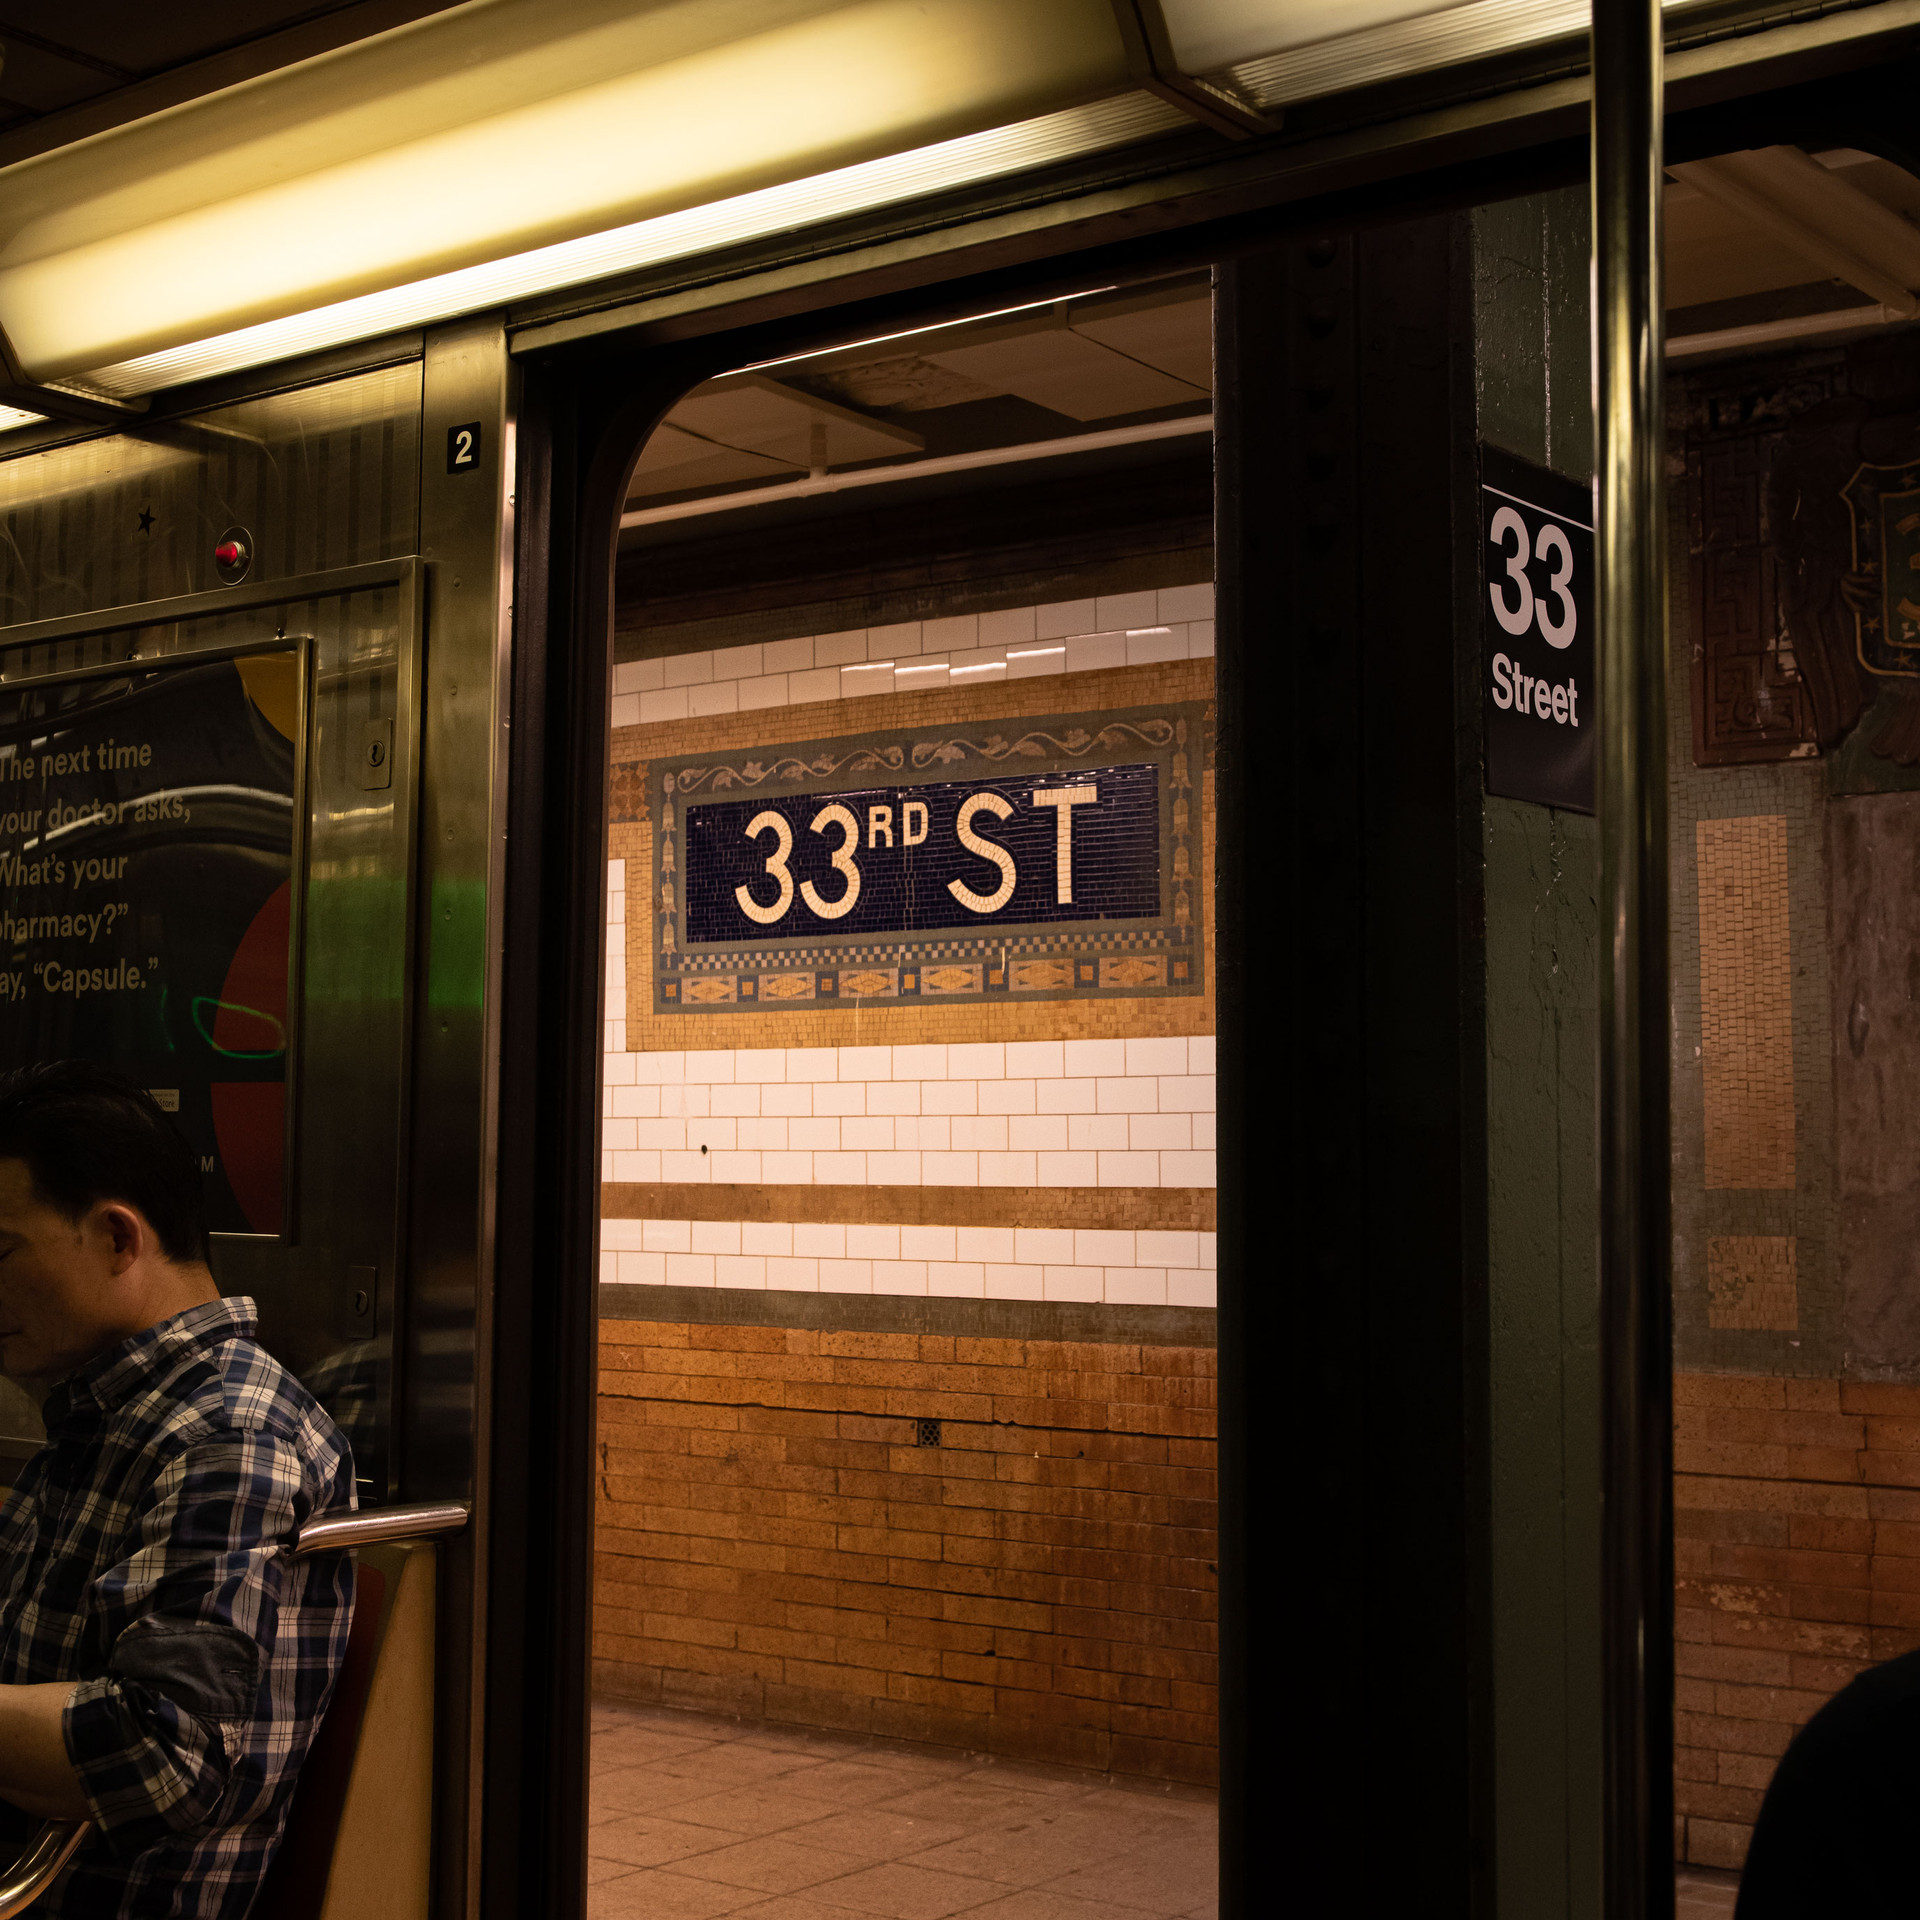 33rd  ST STATION New York Intimate Limited Edition Photography